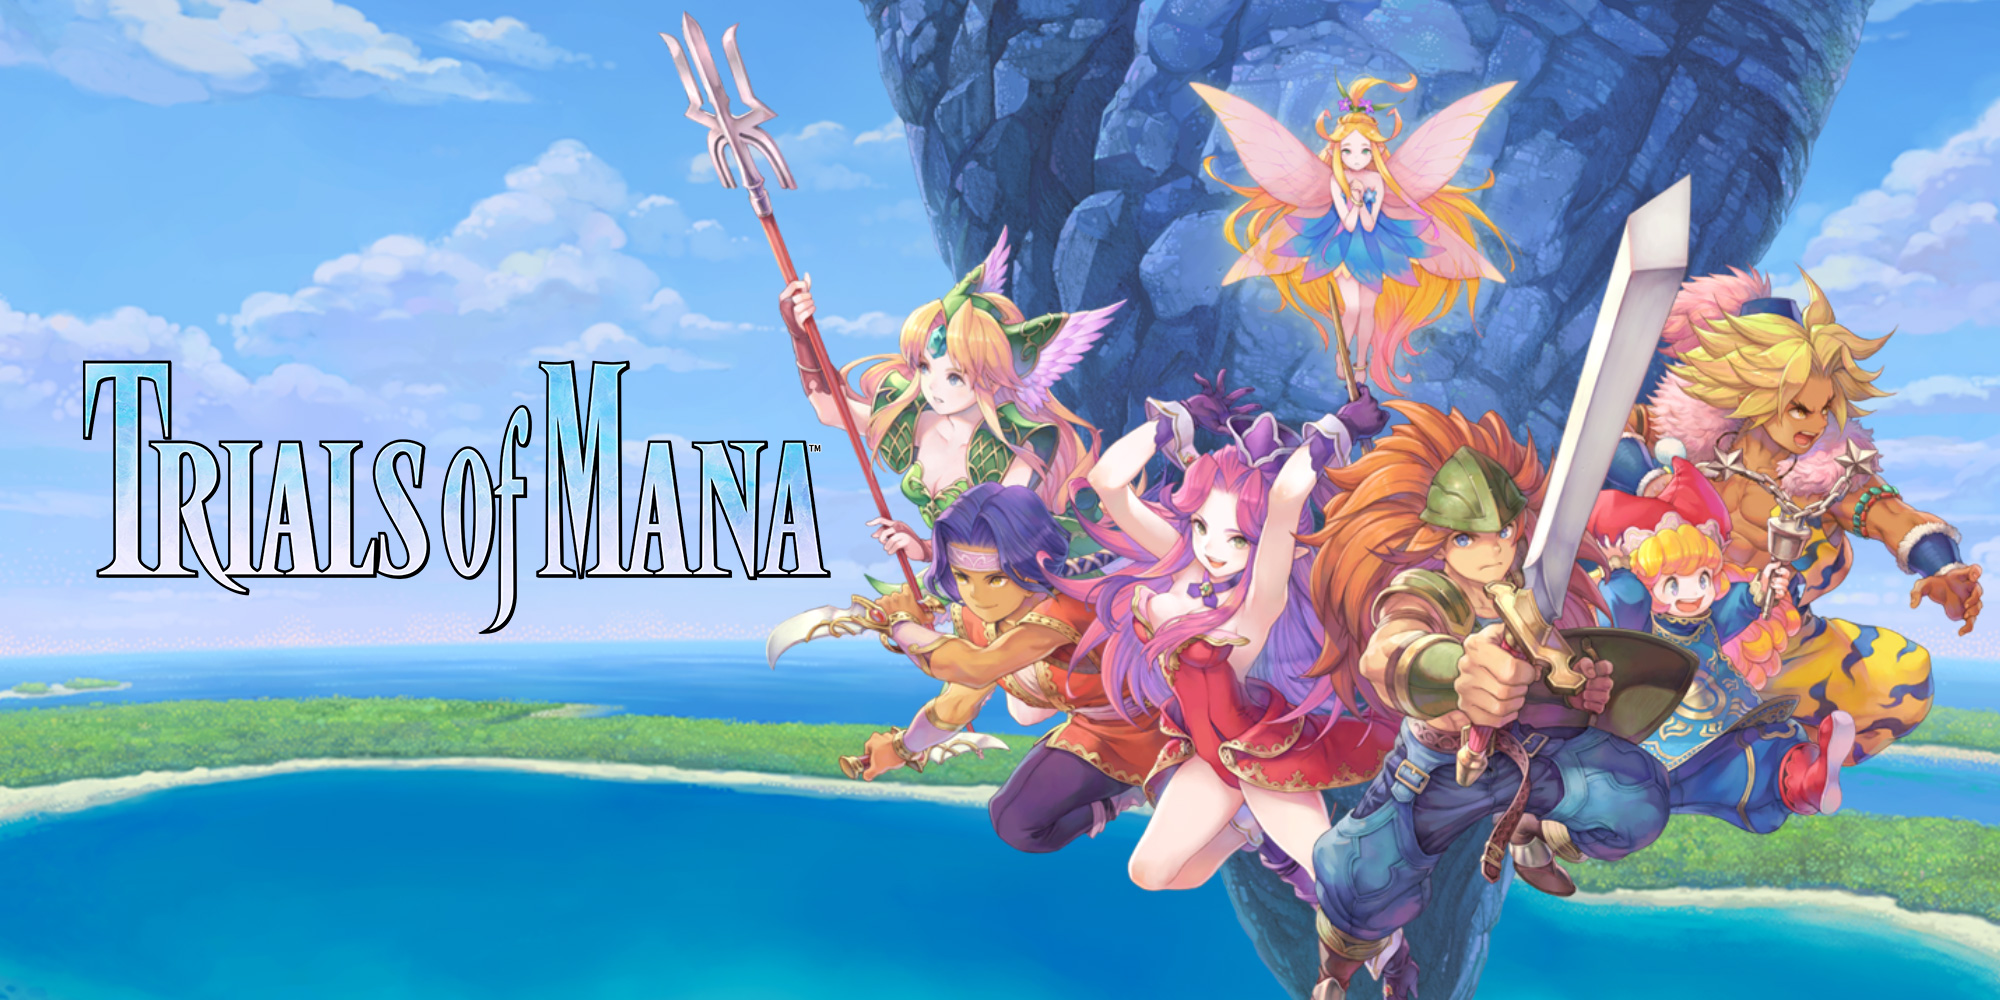 Uncover the magic of TRIALS of MANA with Nintendo Treehouse: Live, coming to Nintendo Switch in 2020